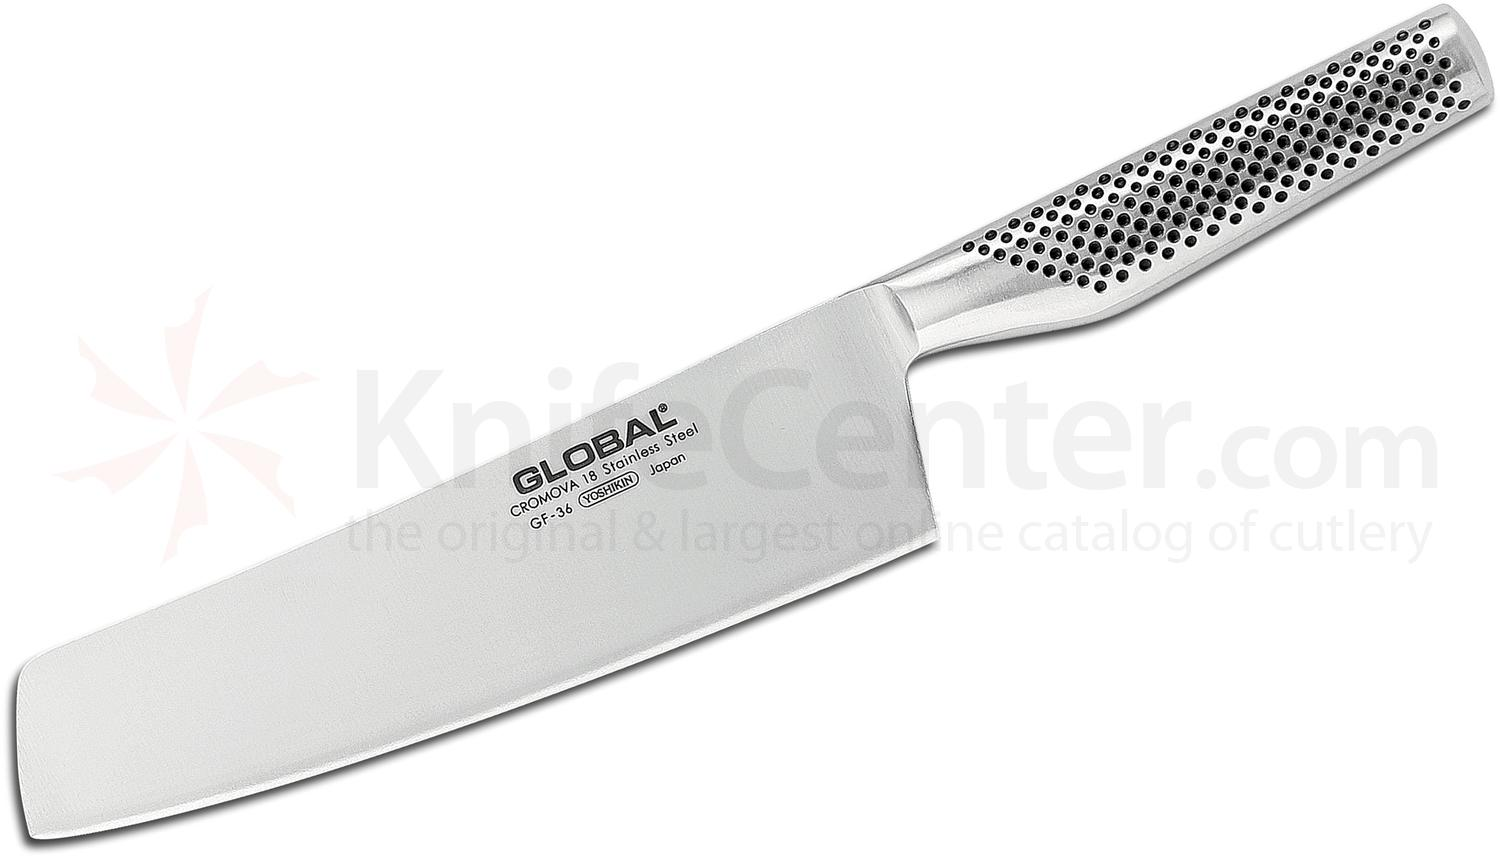 Global GF-36 Classic 8 inch Forged Vegetable/Nakiri Knife